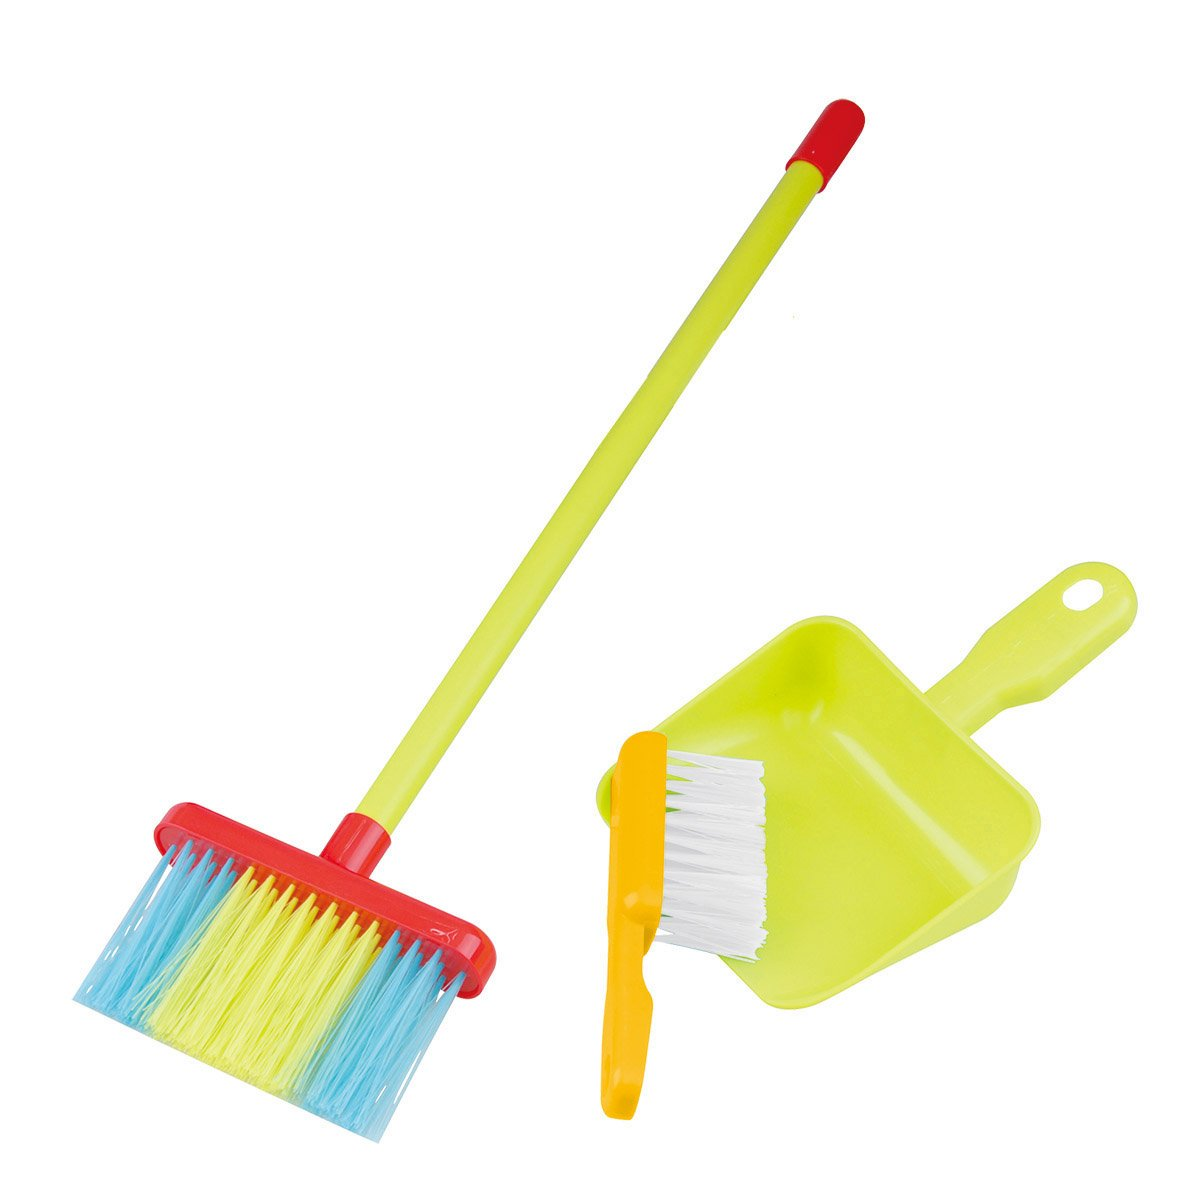 PlayGo My Cleaning Tools Set 3PCS Housekeeping Broom Mini Brush & Mini Shovel Dustpan Children | Toy Cleaning Supplies That Work! Montessori Housekeeping Tools That Fit Into Kid's Hands by PlayGo